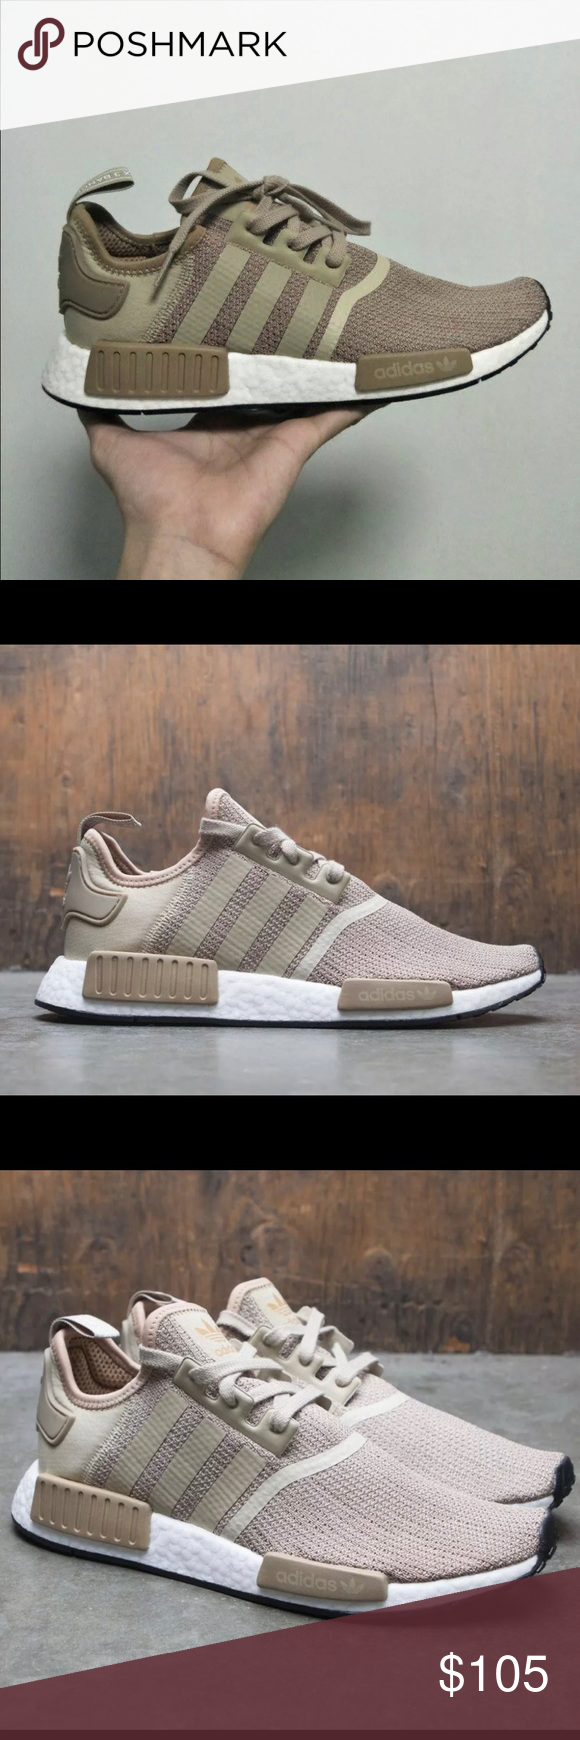 on sale e6547 a12b2 New Adidas NMD R1 Raw Gold Mens Size 11.5 & 12 New ! Men's ...